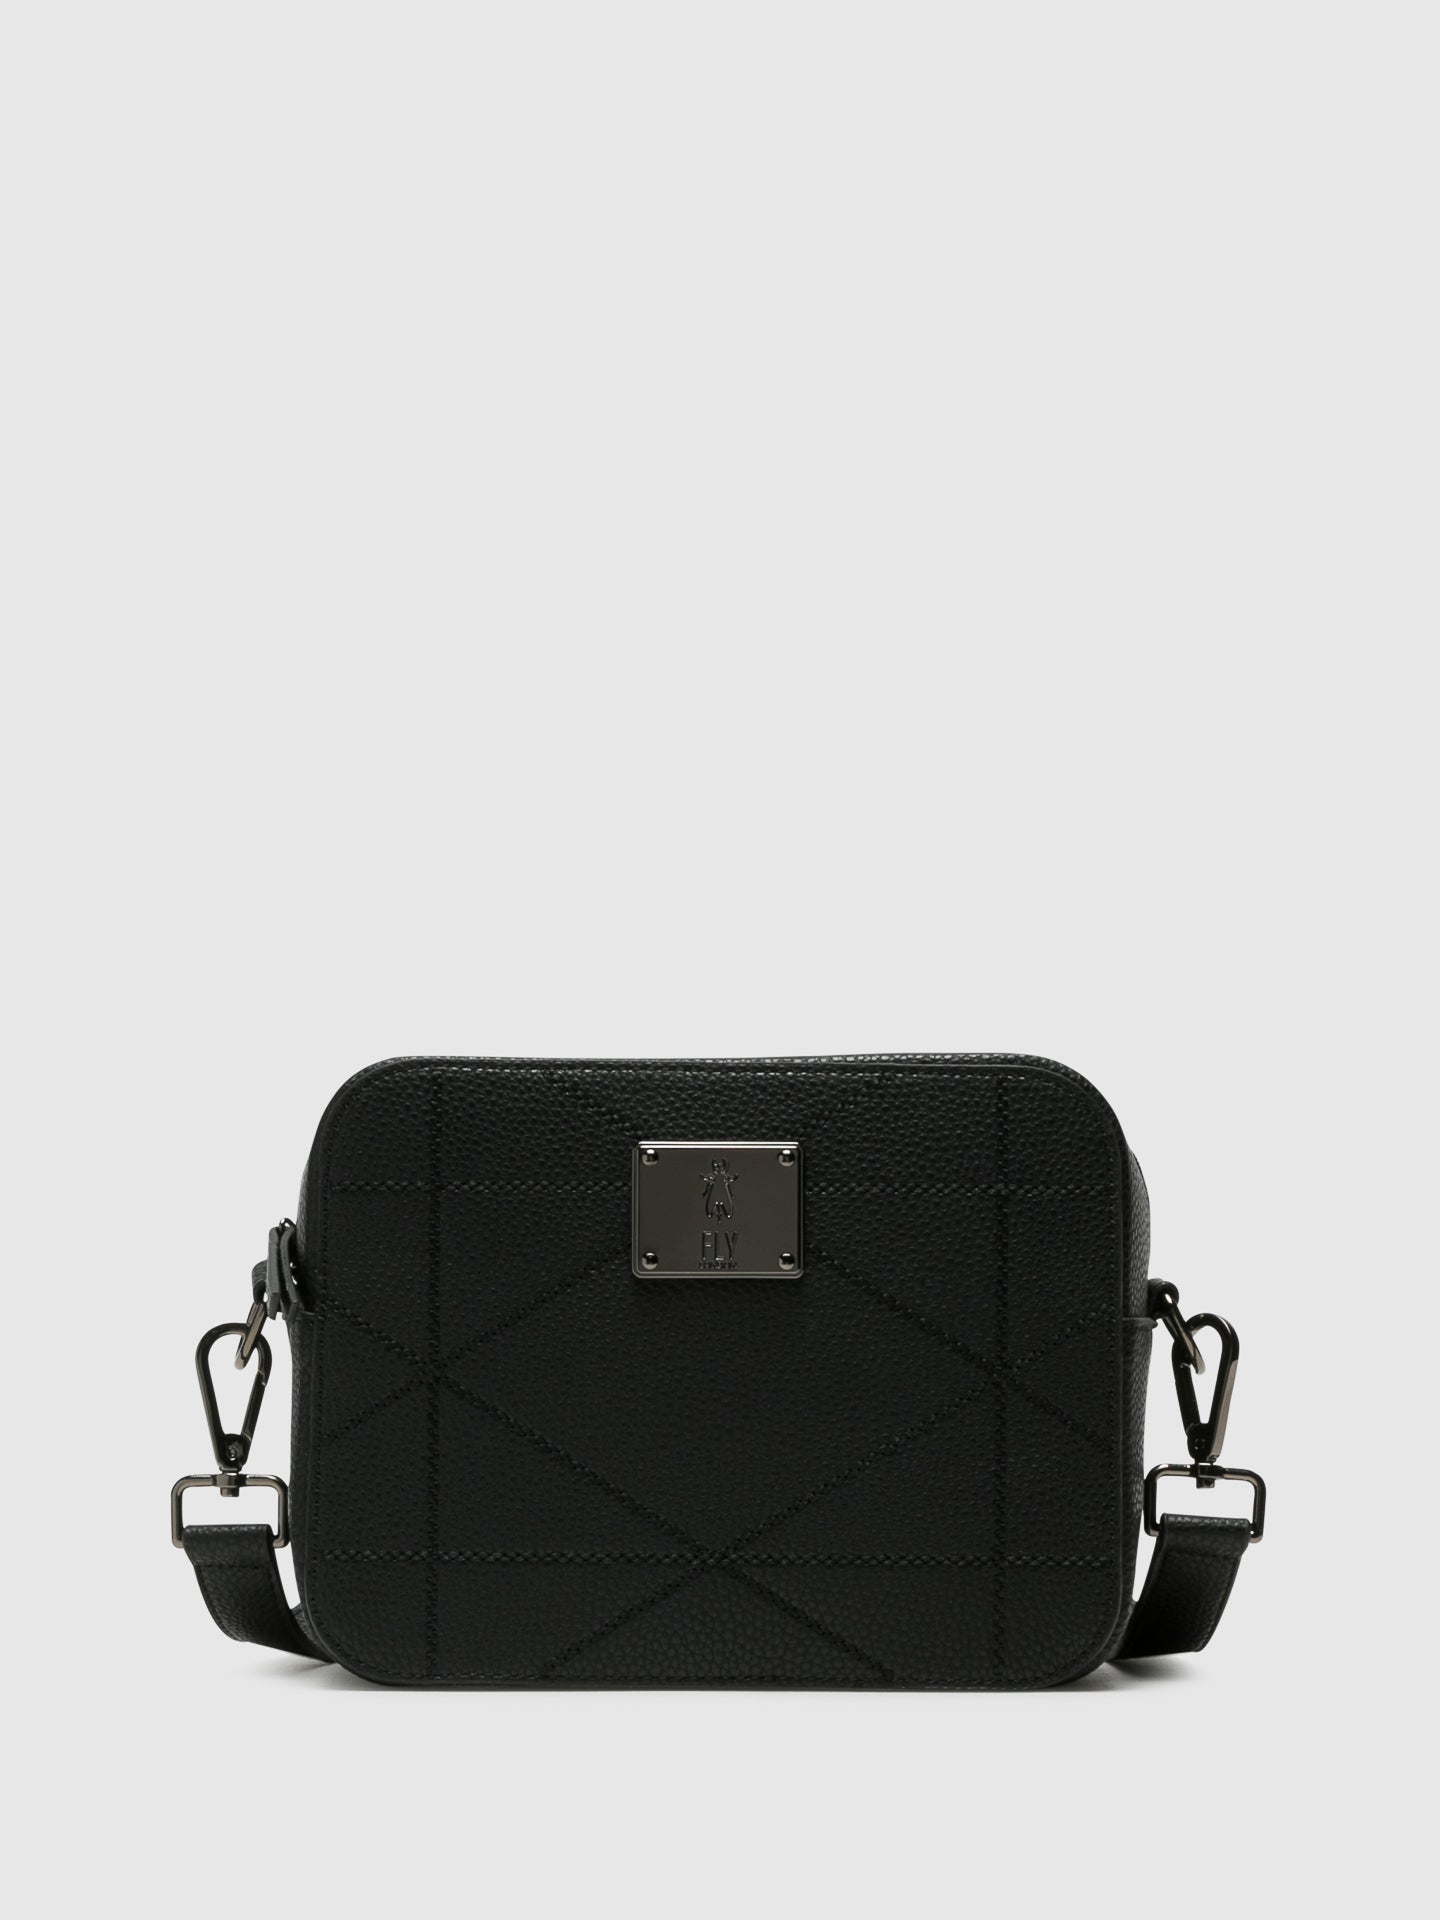 Fly London Black Crossbody Bags